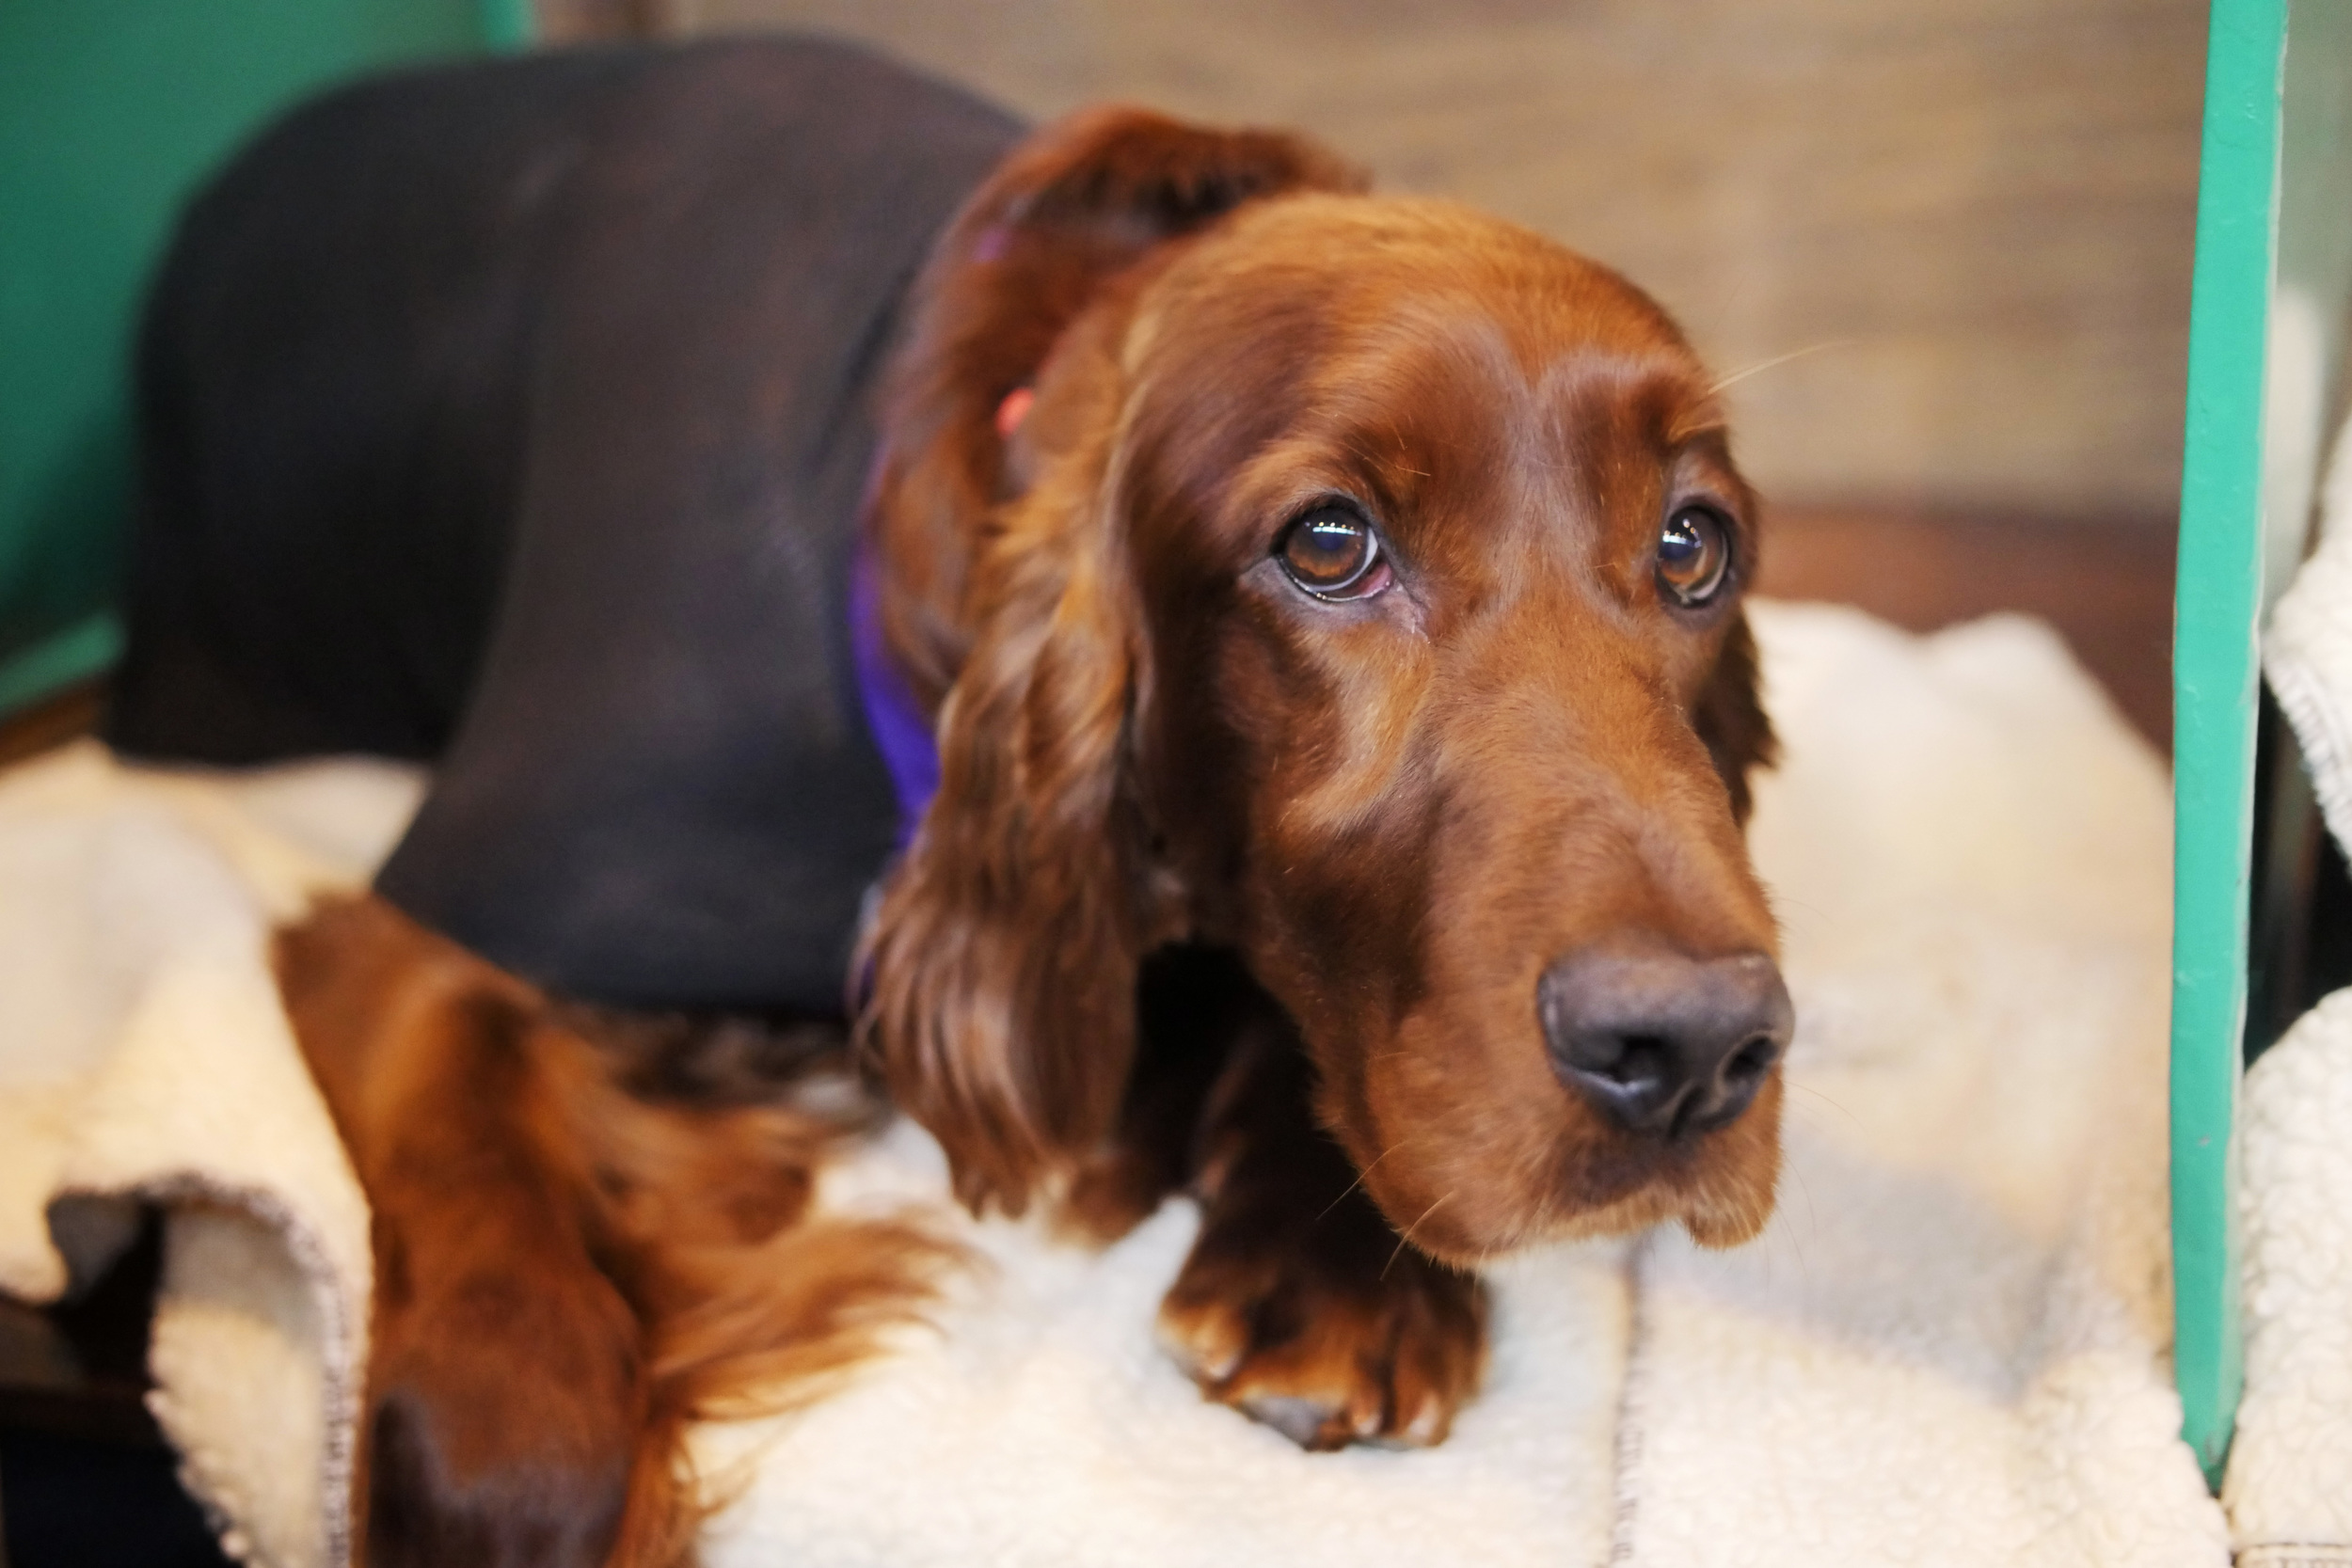 Irish setter trying to lure me into setting him free -with those big eyes